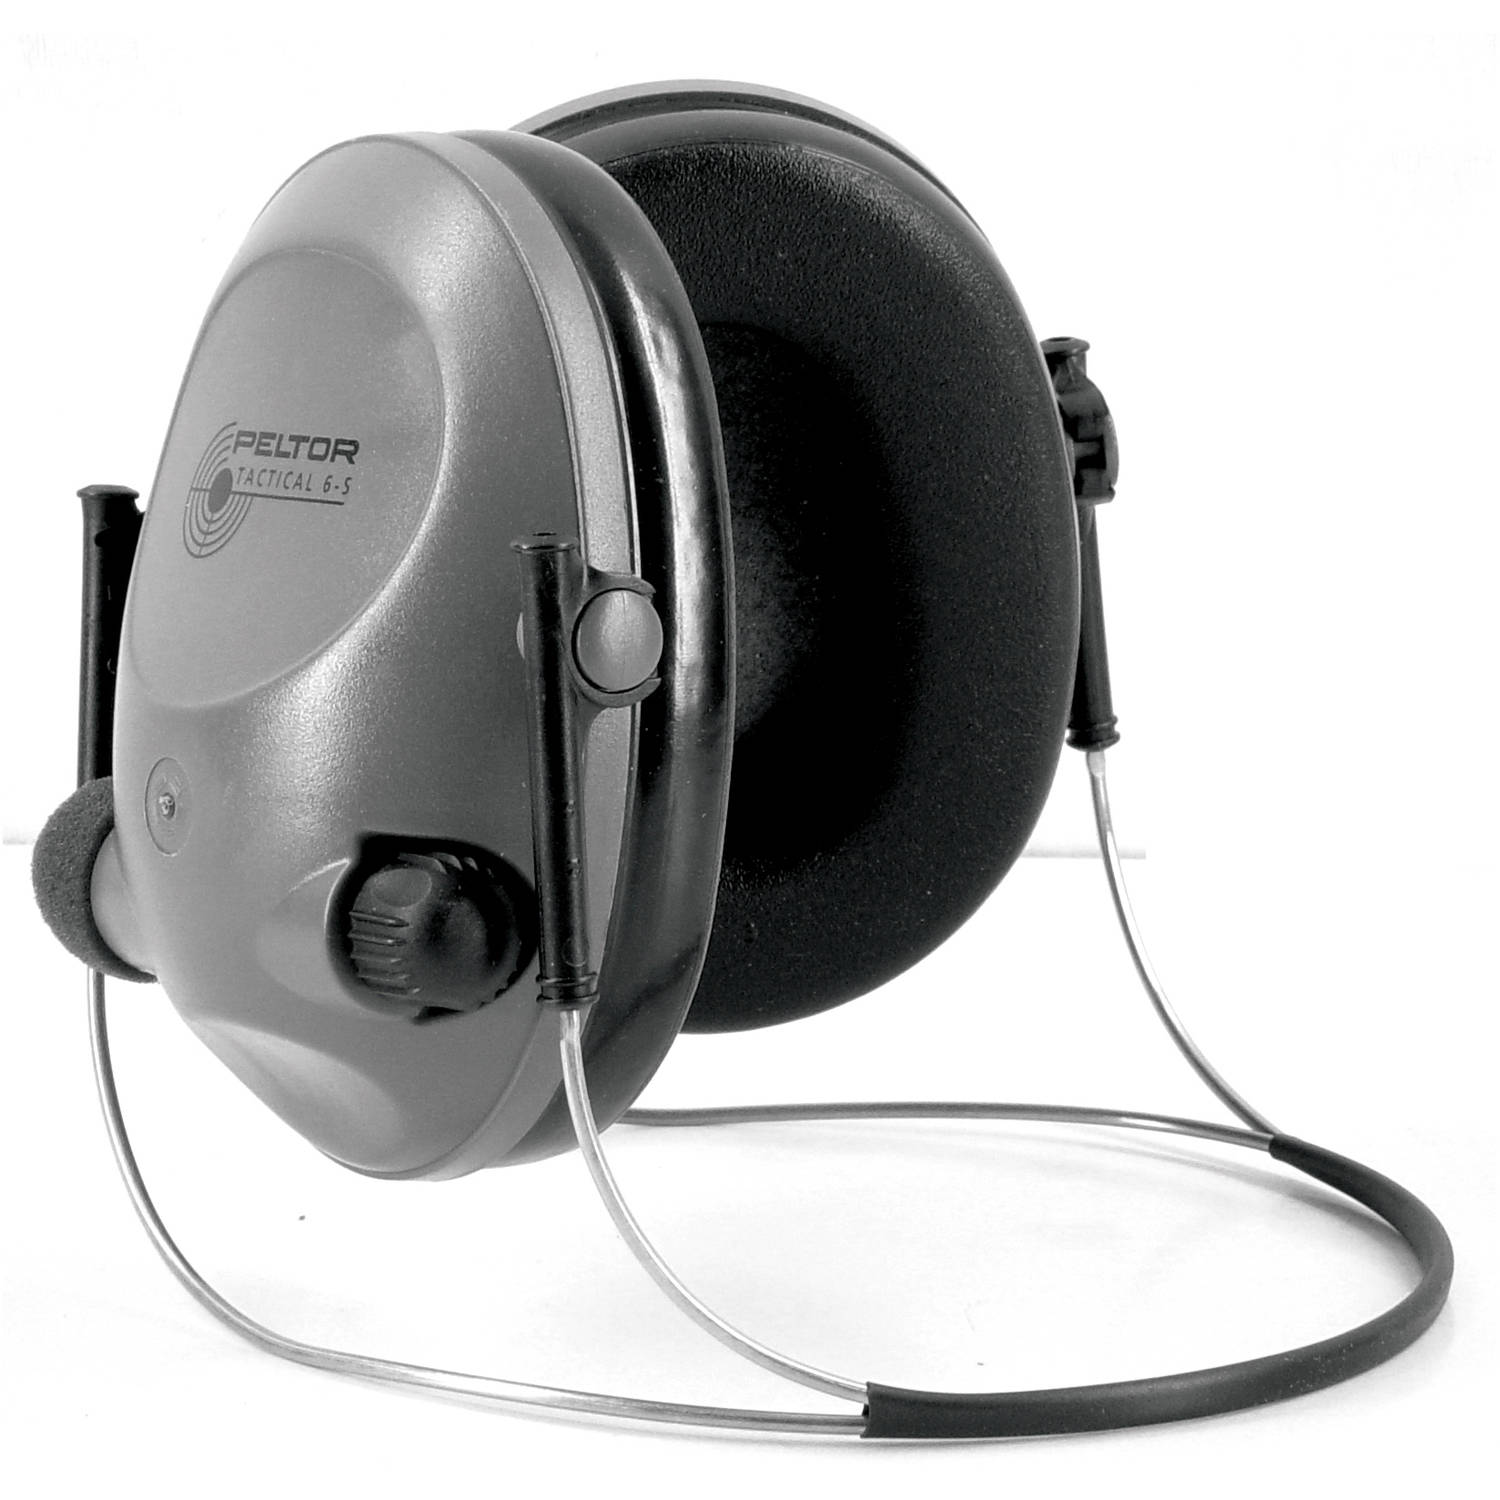 3M/Peltor Electronic 6S Earmuff, Gray, NRR 19, Behind the Head, Stereo